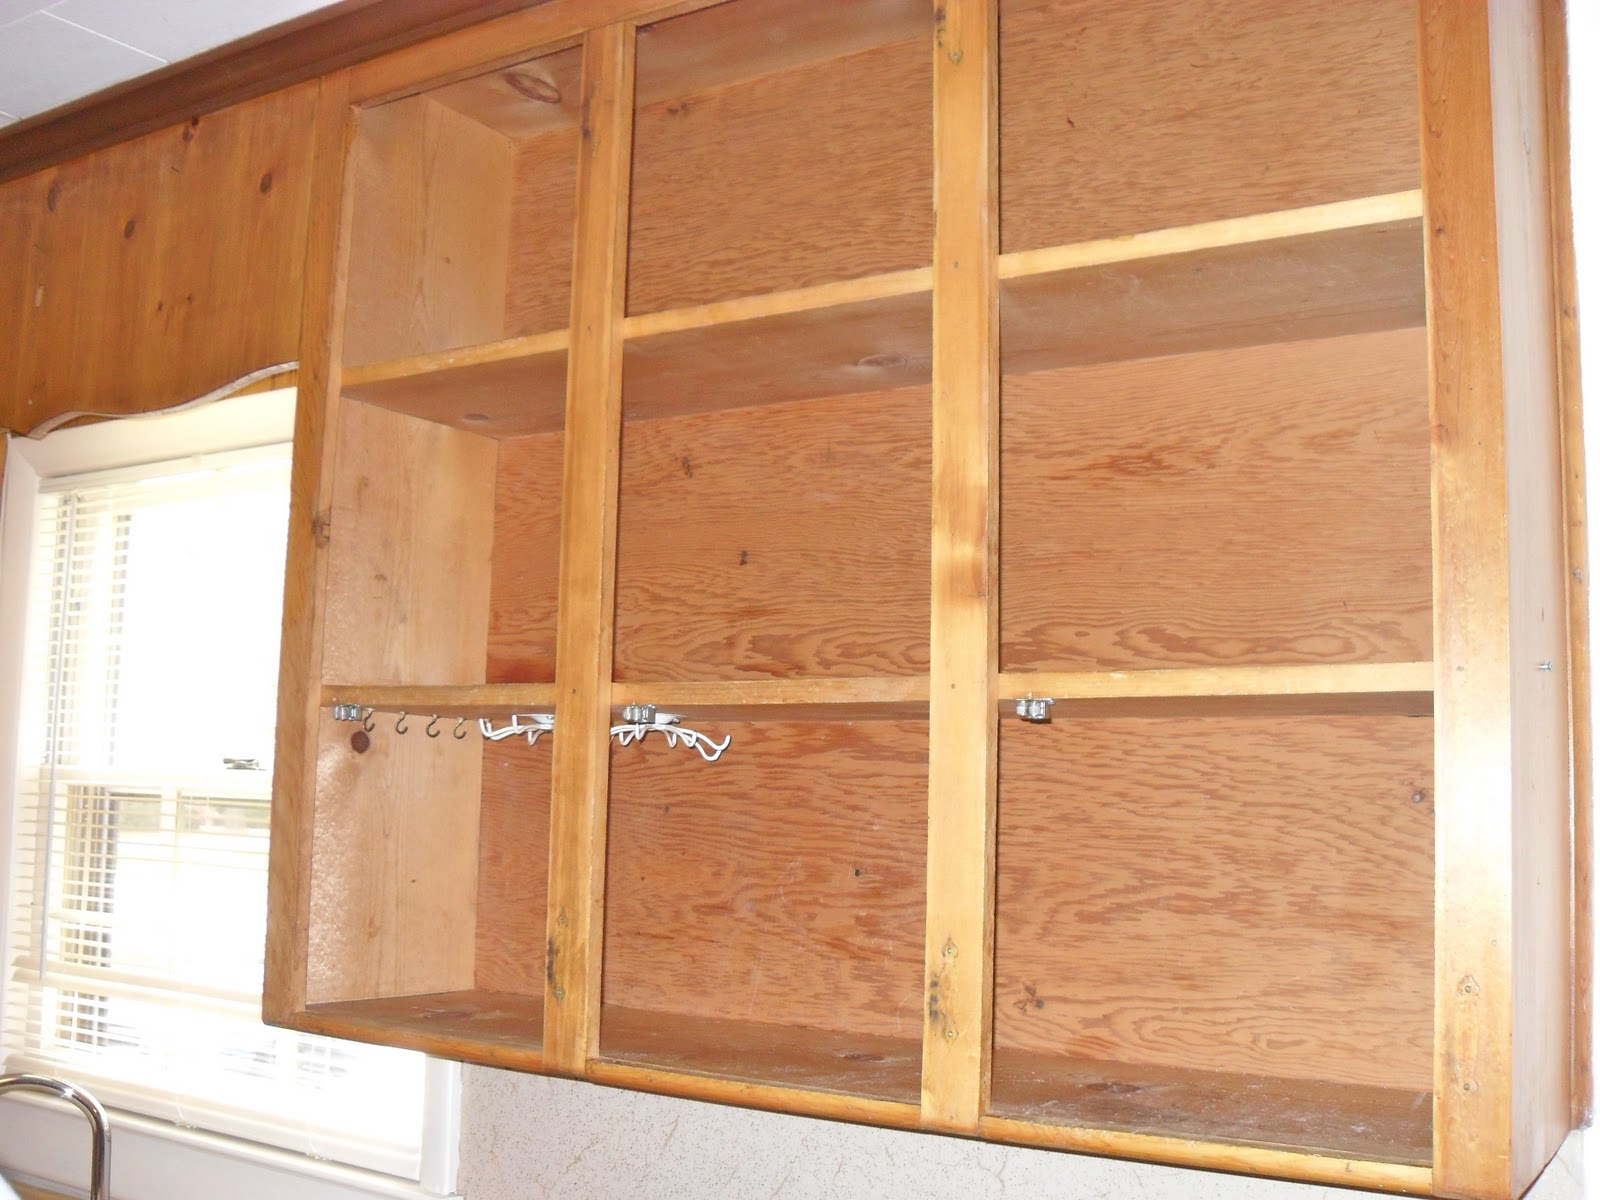 diy painting knotty pine cabinets pine cabinets kitchen DIY Painting Knotty Pine Cabinets